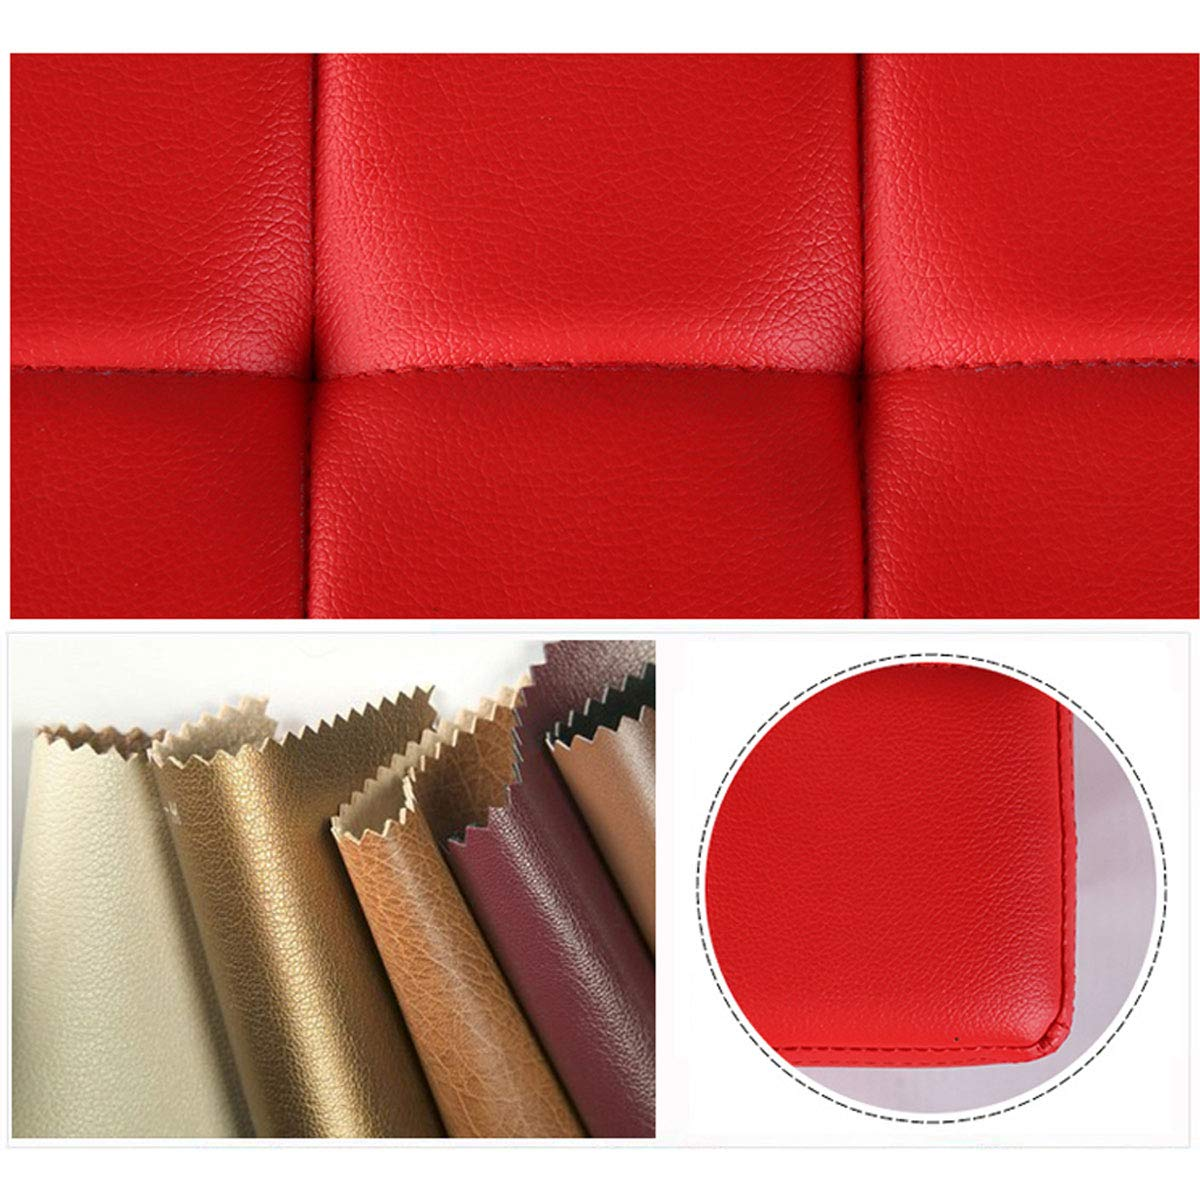 Footstool Ottoman Storage Chest Fashion Living Room Pouffes Sofa Bench Seat Space Saving Max Load 150kg Stool Hallway Furniture Color : Rose red, Size : 80 * 40 * 40cm Storage Benches